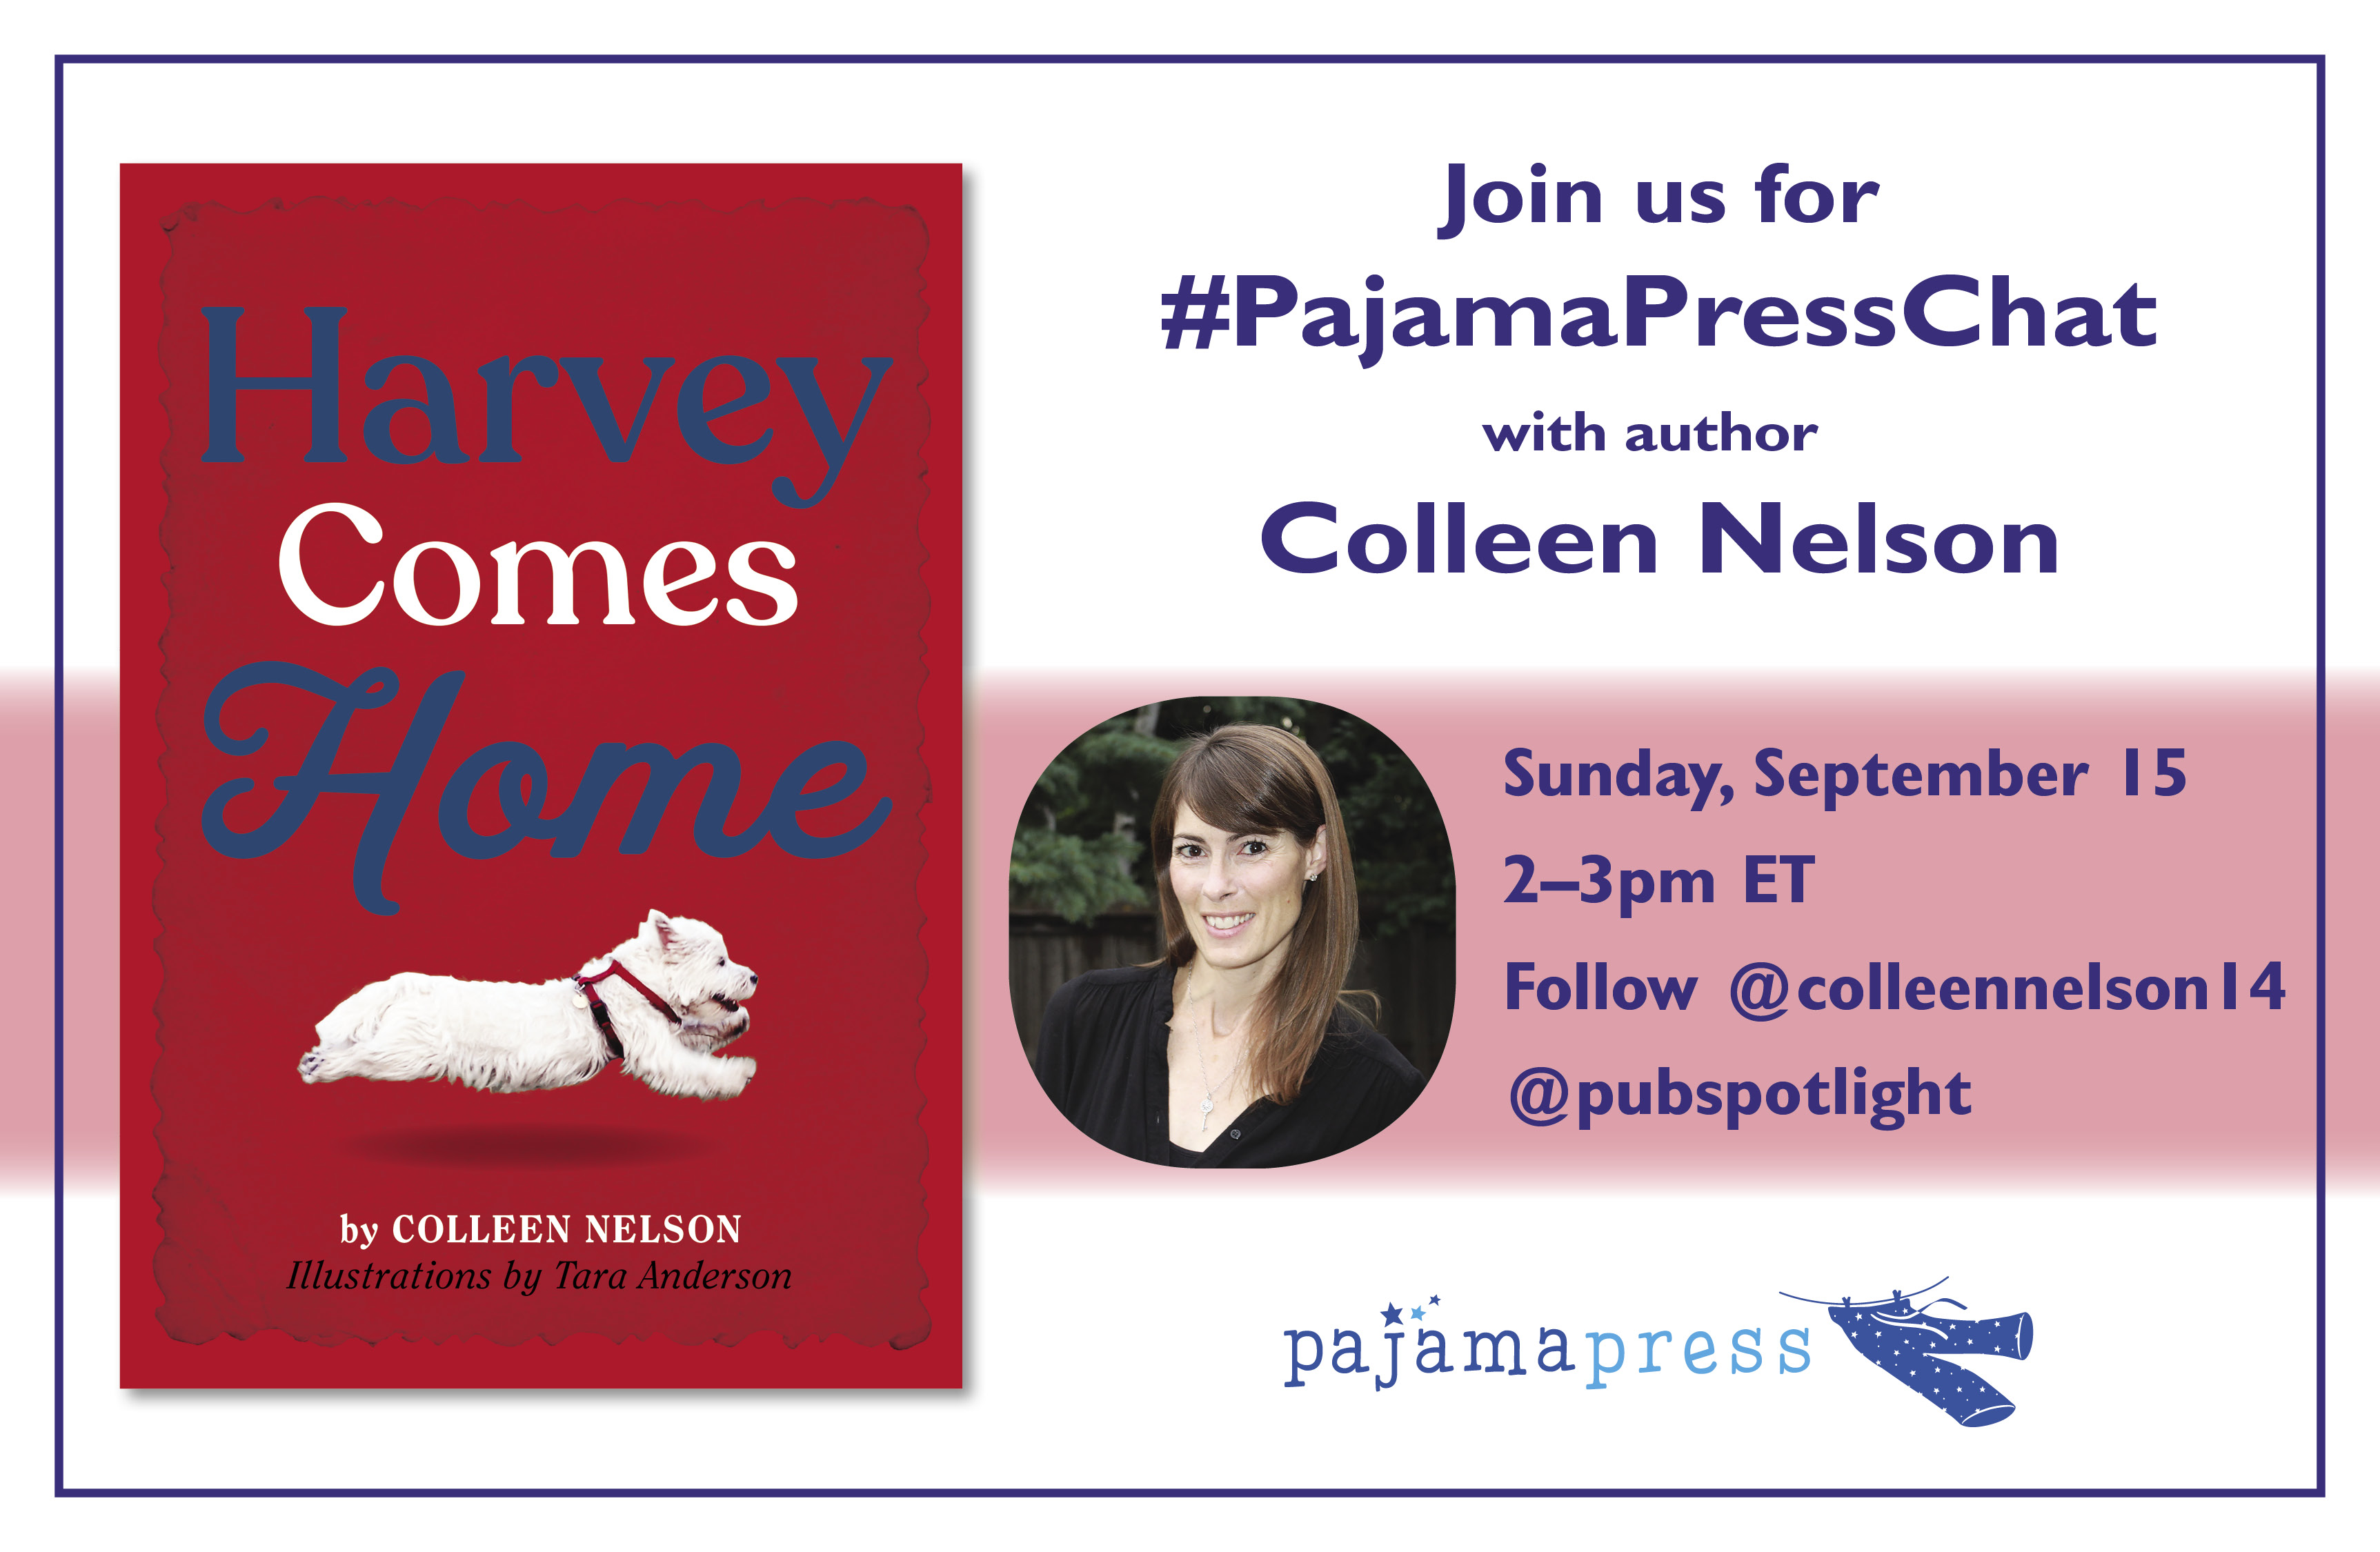 Twitter Chat graphic for Colleen Nelson